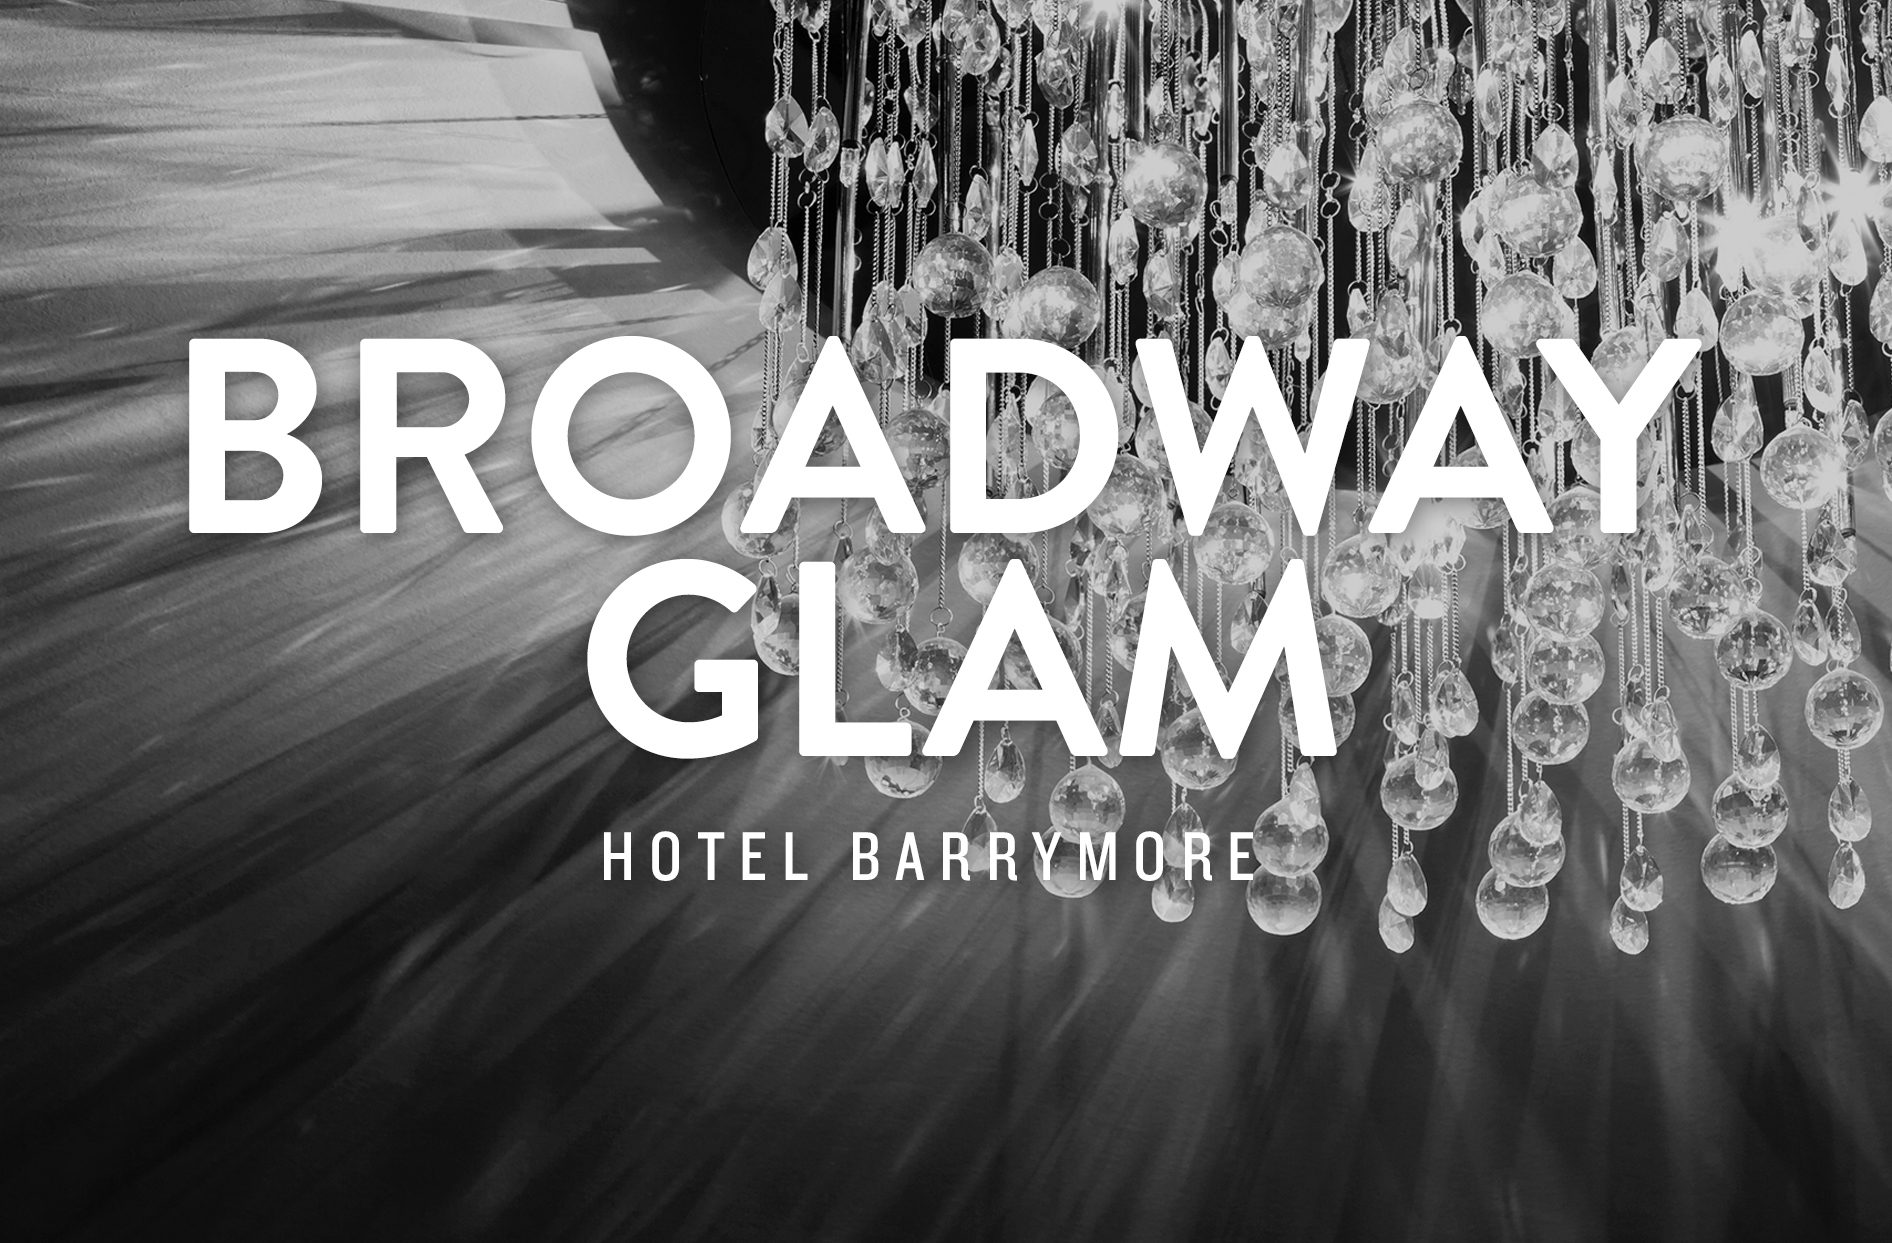 discover the look of broadway glam inside the hotel barrymore collection